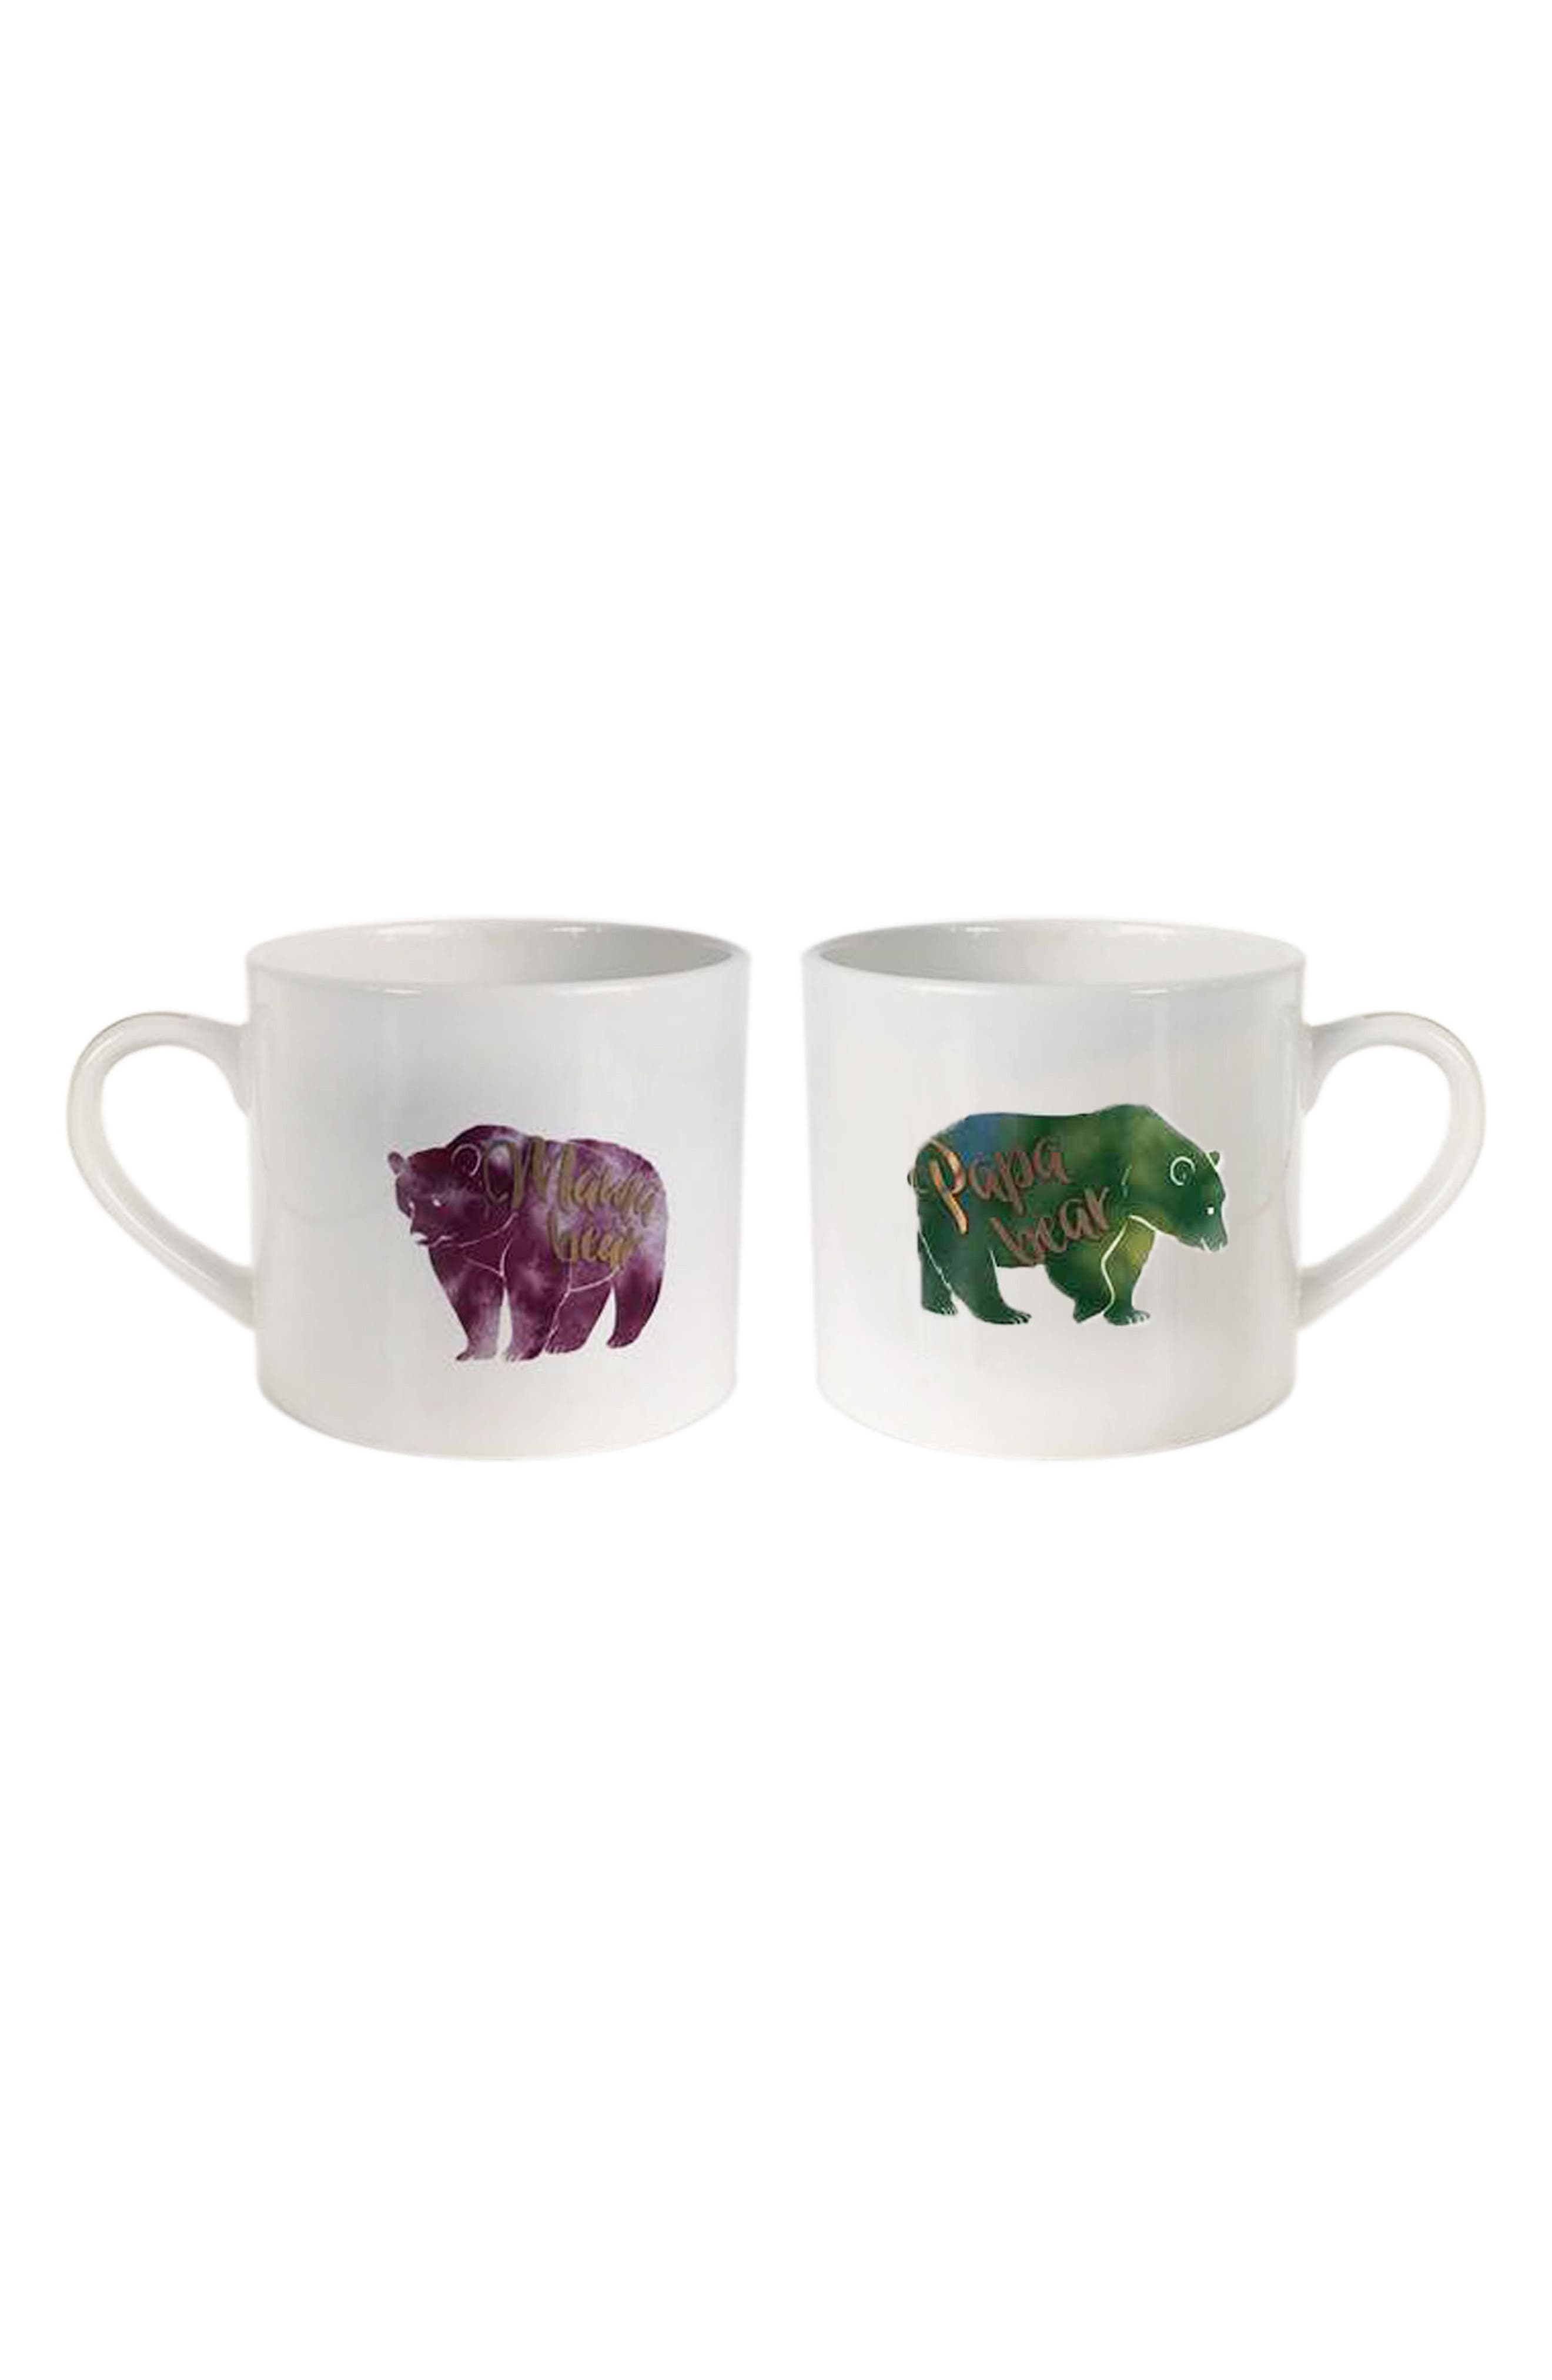 Papa Bear & Mama Bear Set of 2 Mugs,                         Main,                         color, 100